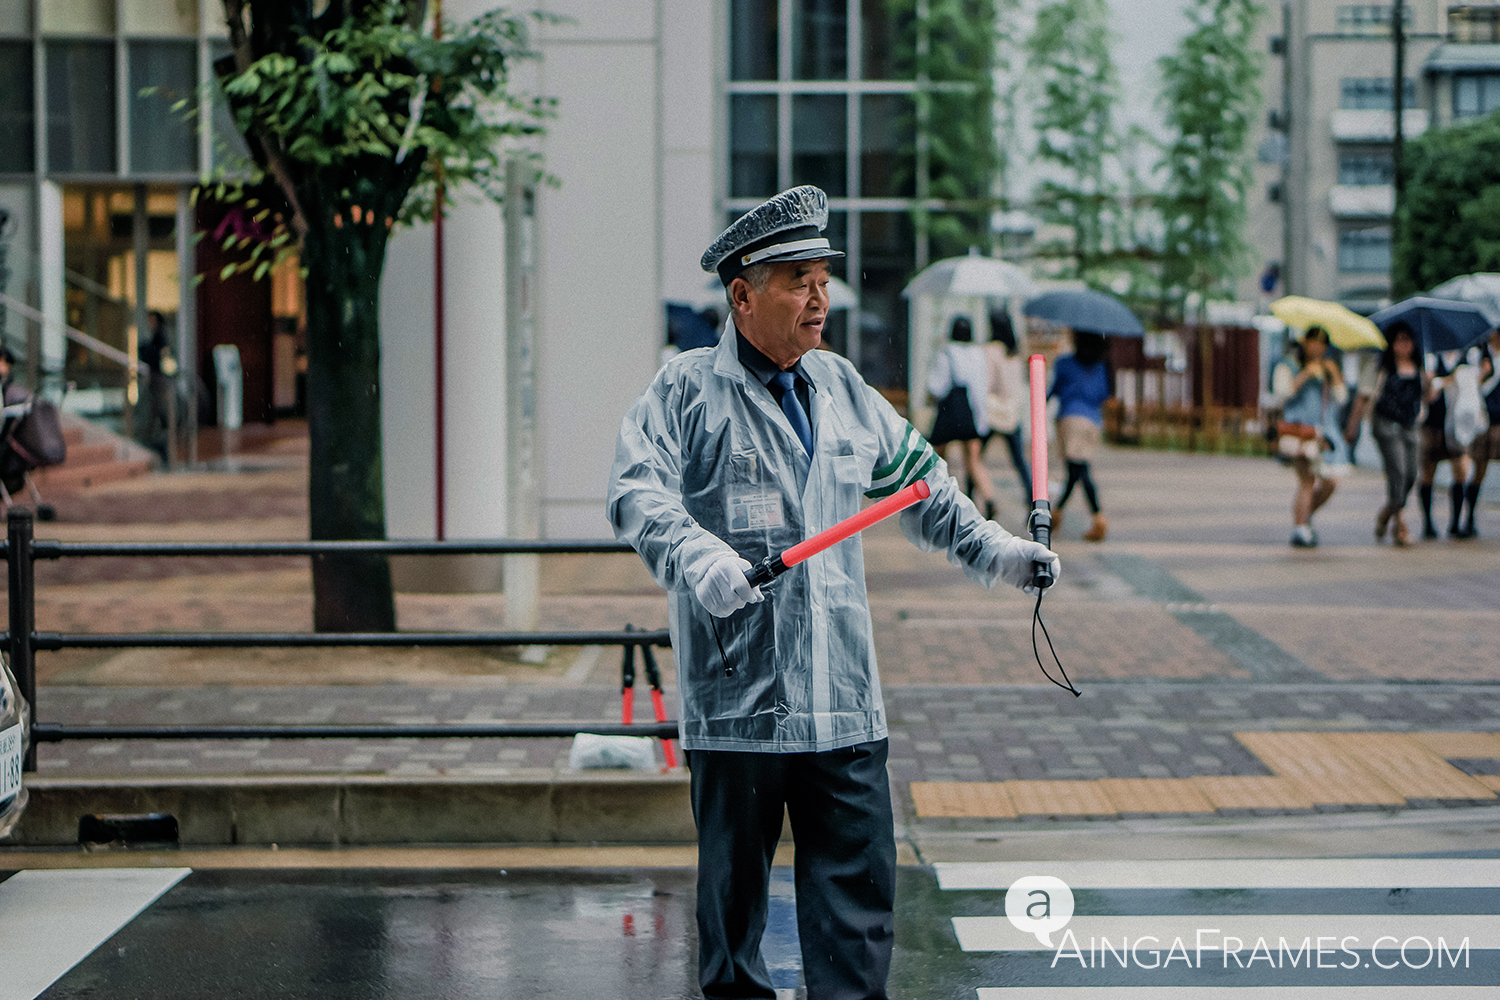 A crossing guard directing traffic in front of a giant shopping center in Kyoto on a cold, rainy day.